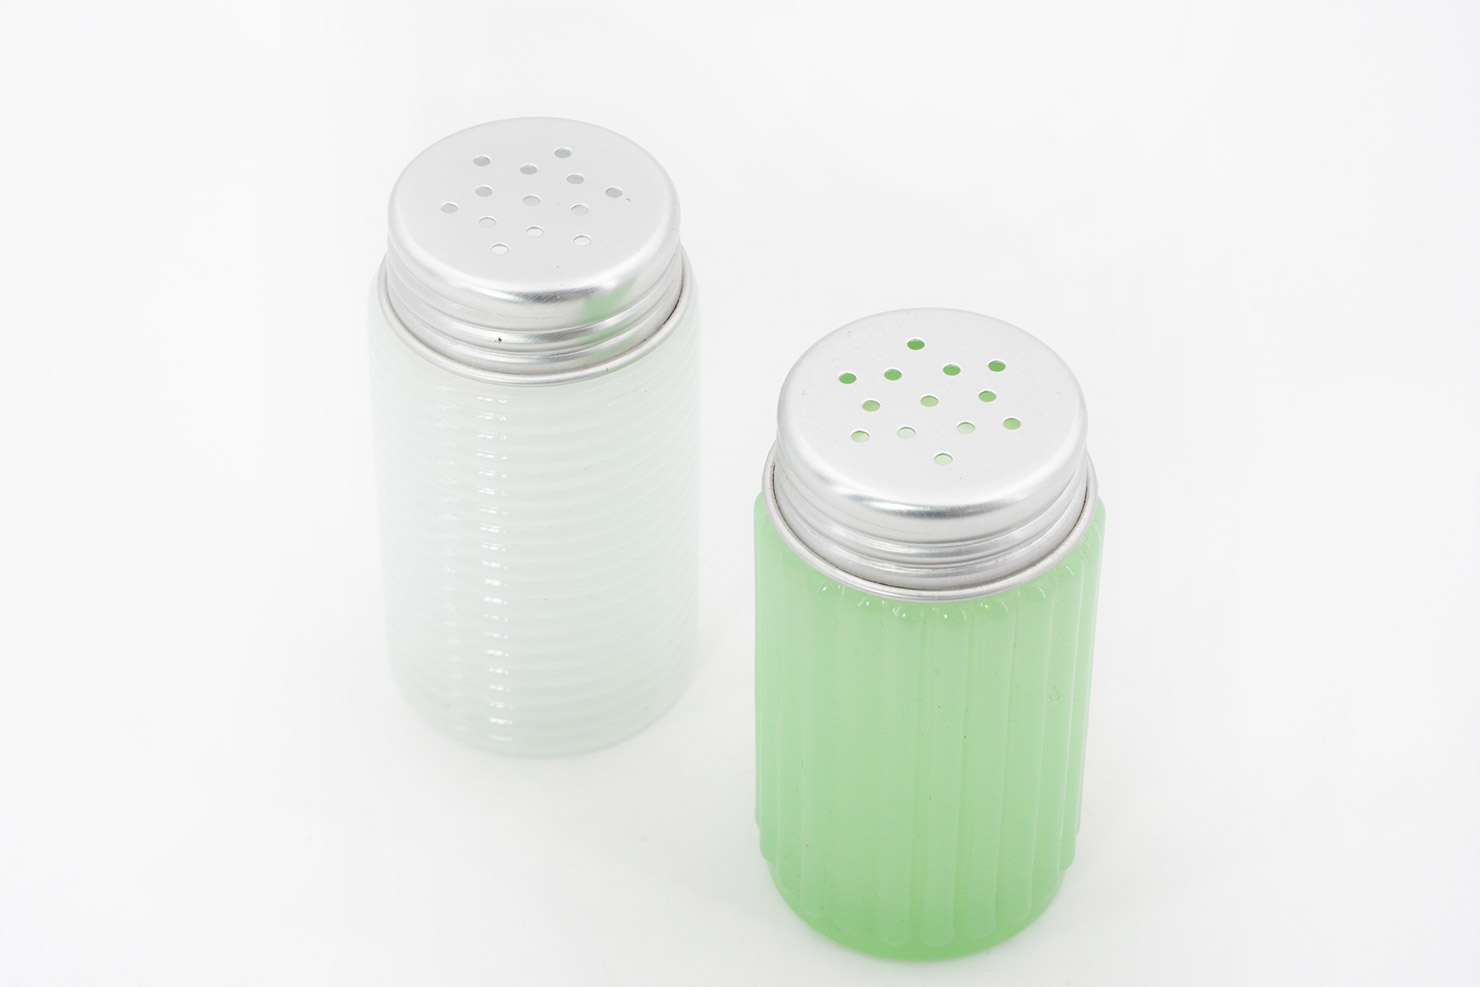 GREEN AND WHITE SALT AND PEPPER - SERAX